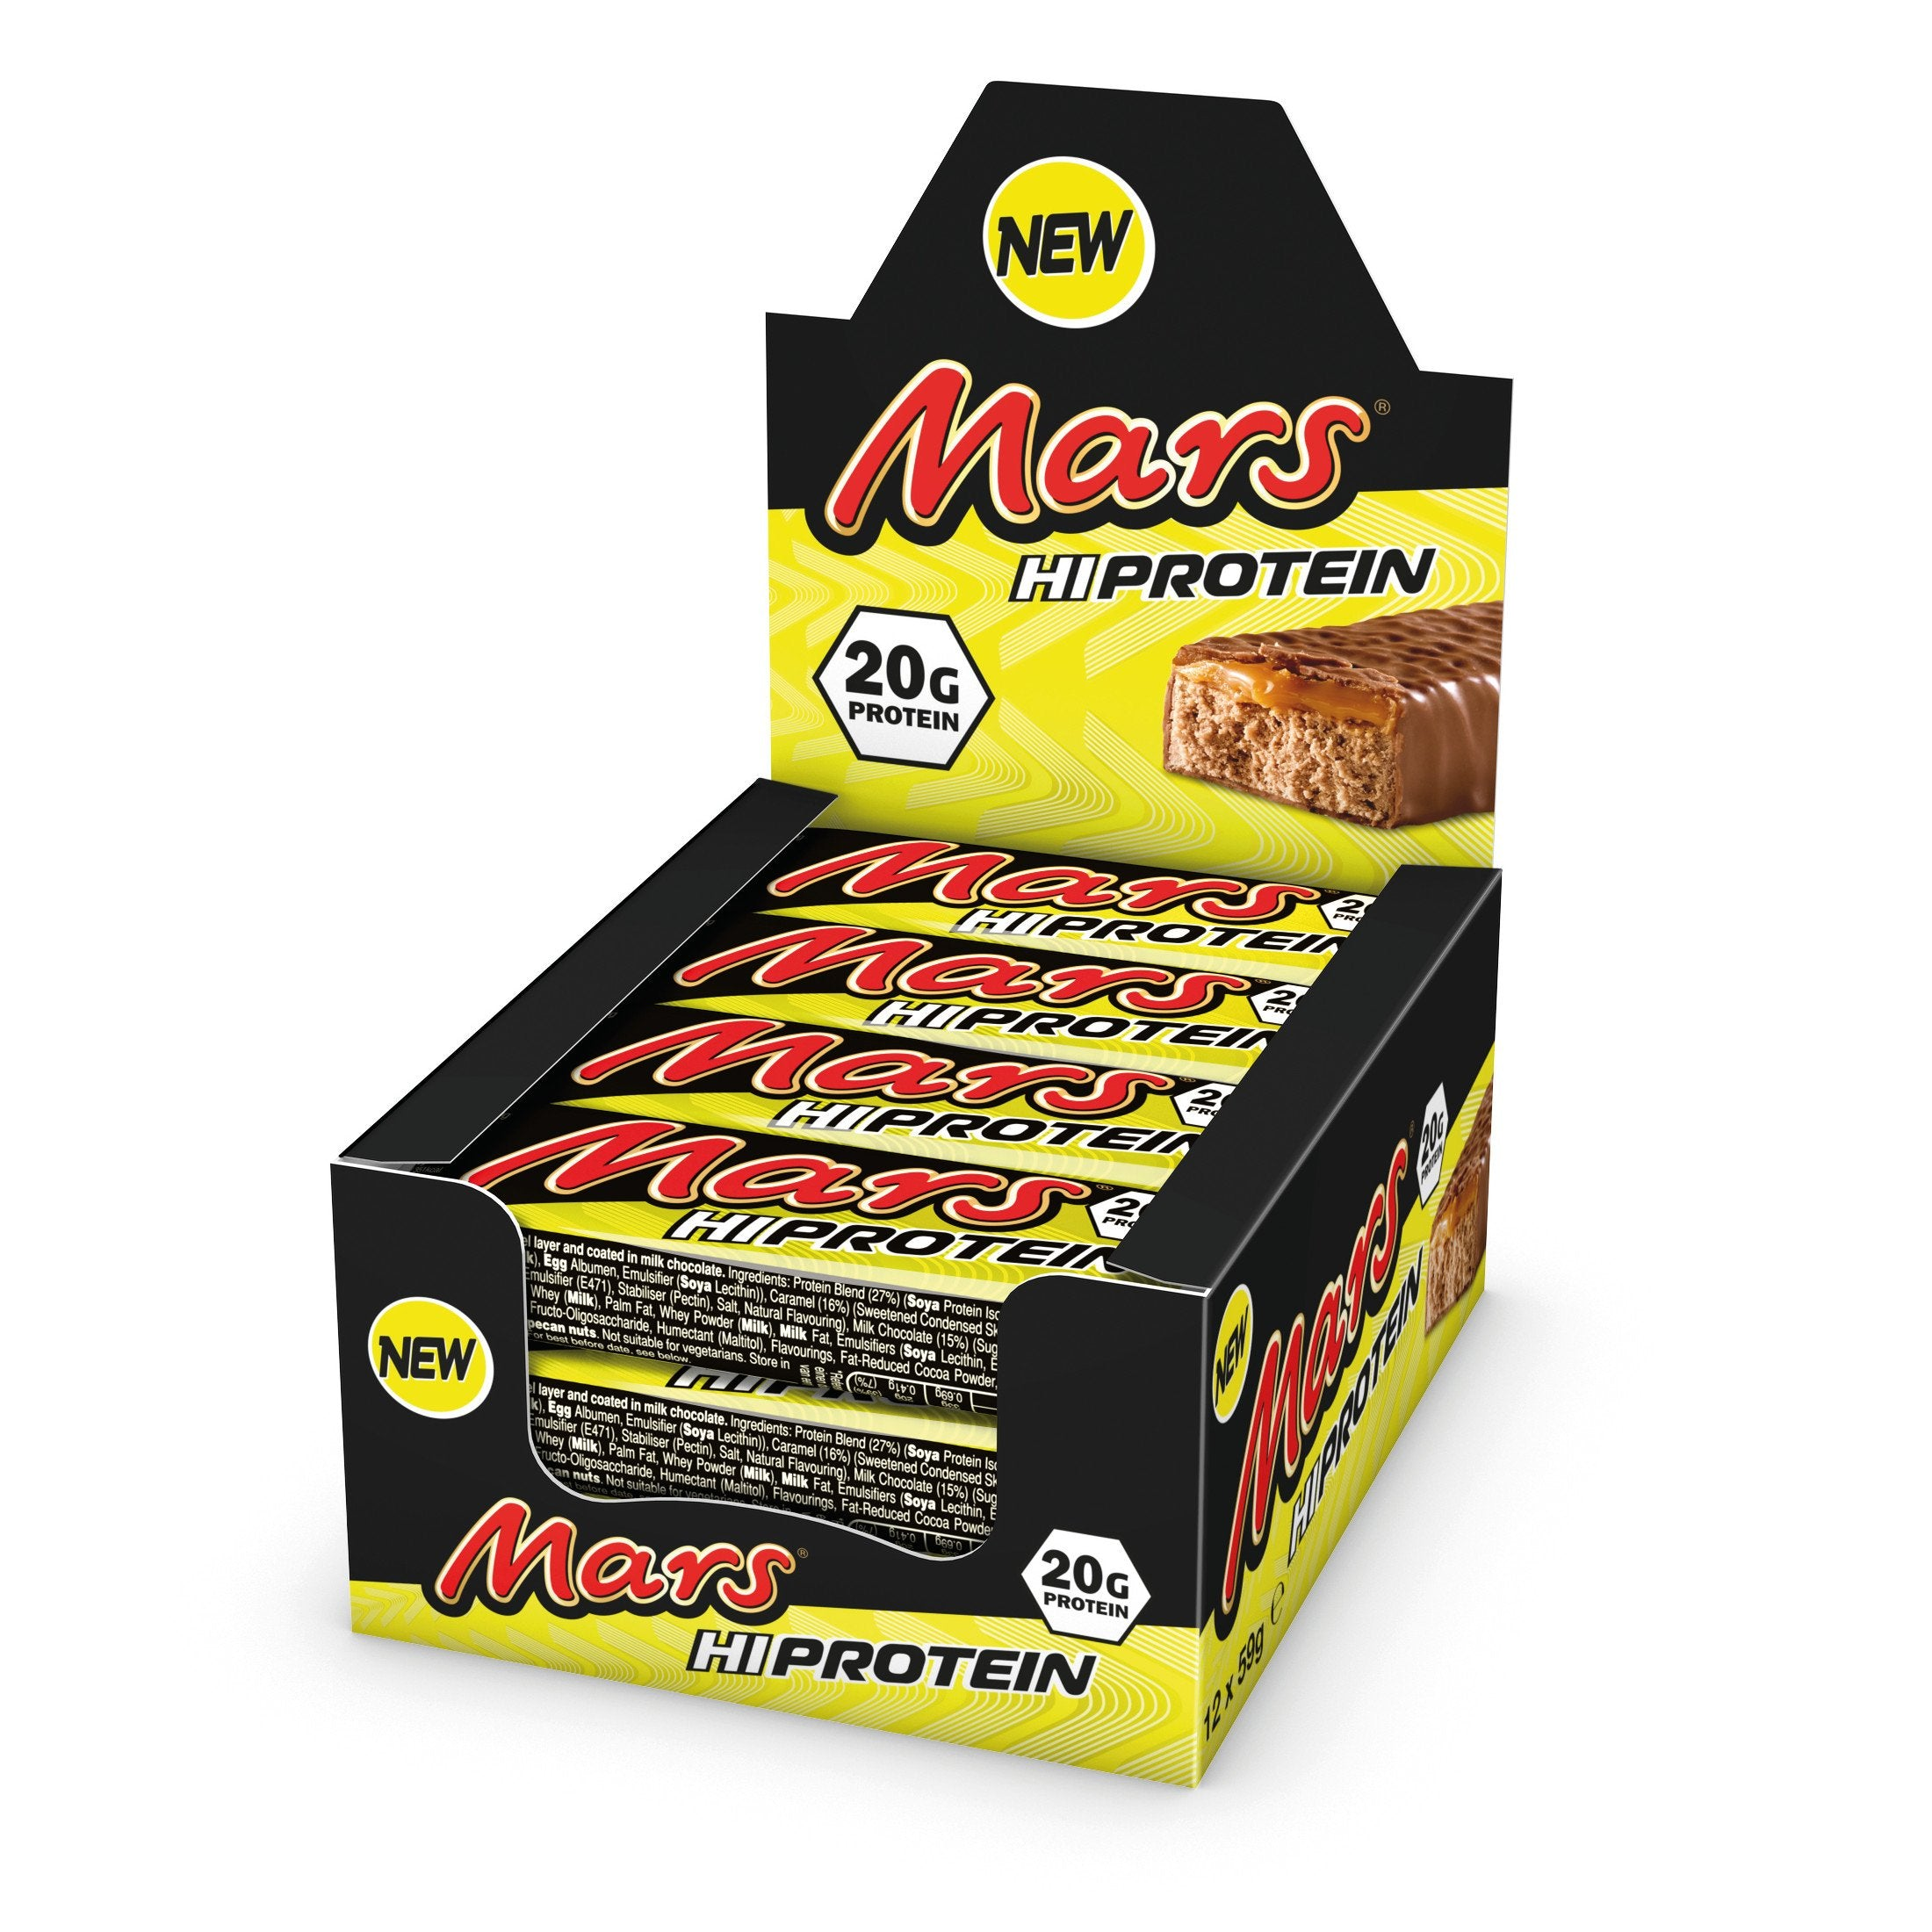 Image of Mars Hi Protein Bars - Pack of 12